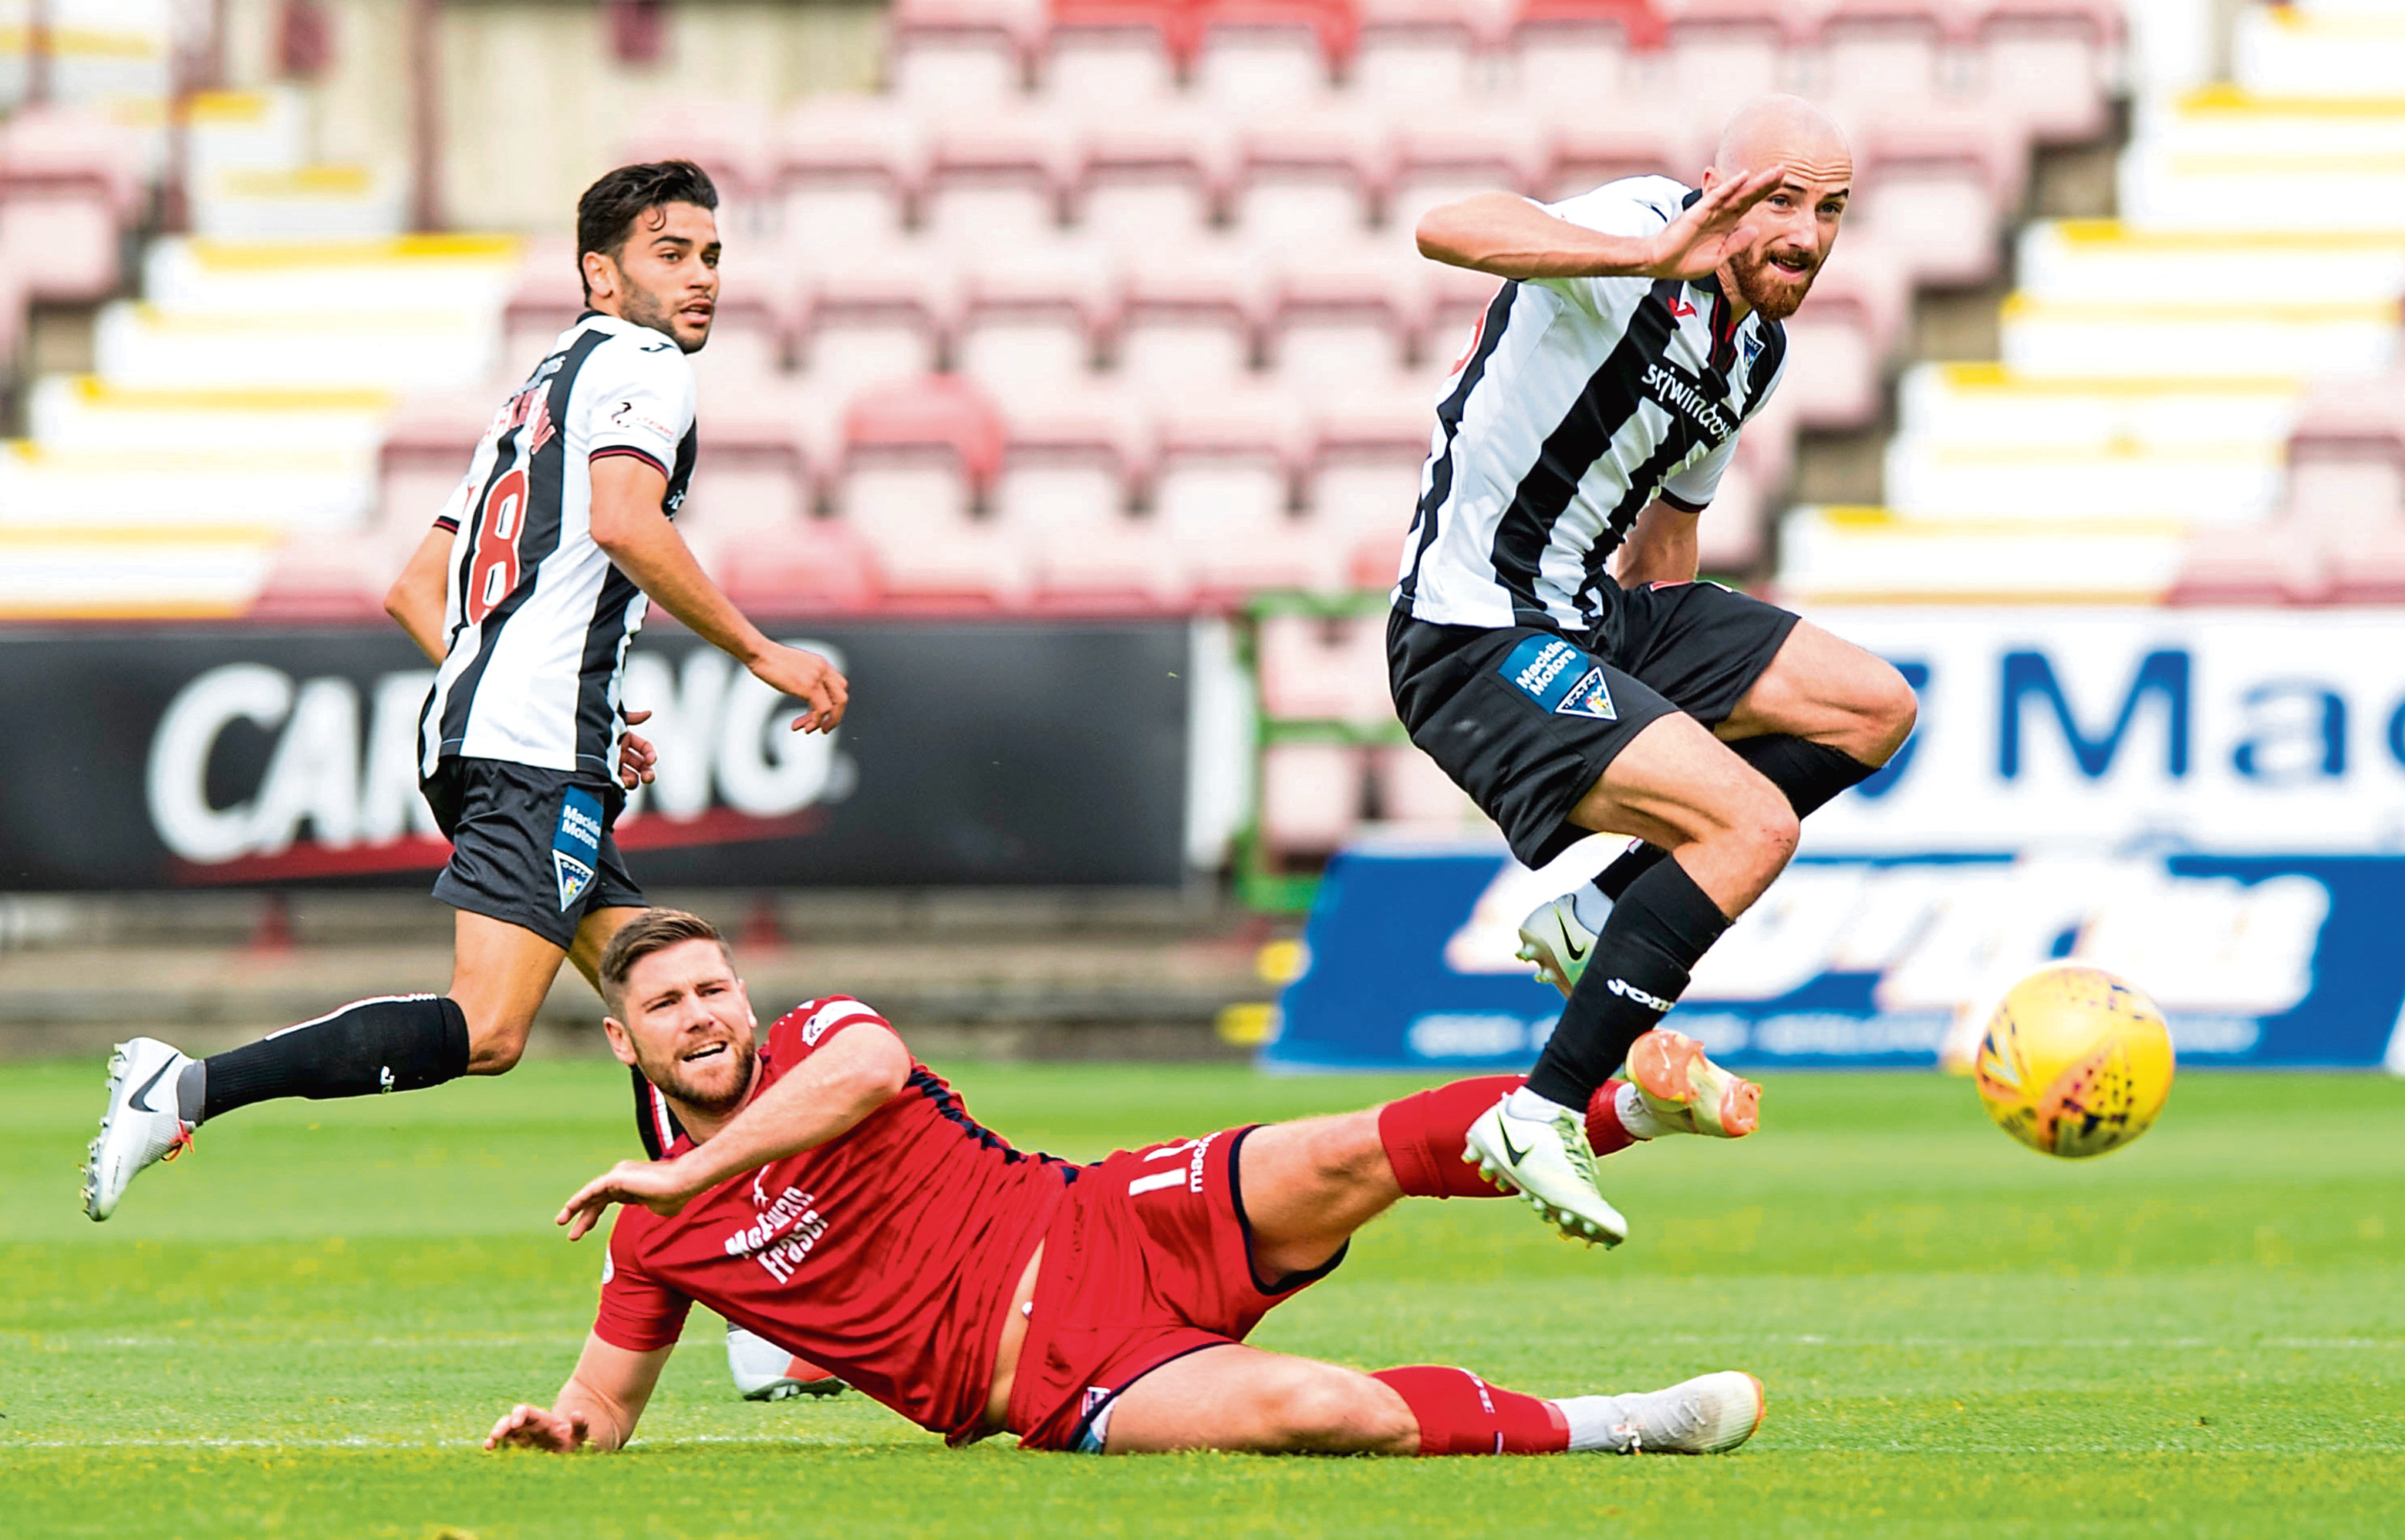 Both Faissal El Bakhtaoui and James Vincent are on loan at Dunfermline from Dundee for the remainder of the season. The Pars, however, are struggling this season in the Championship